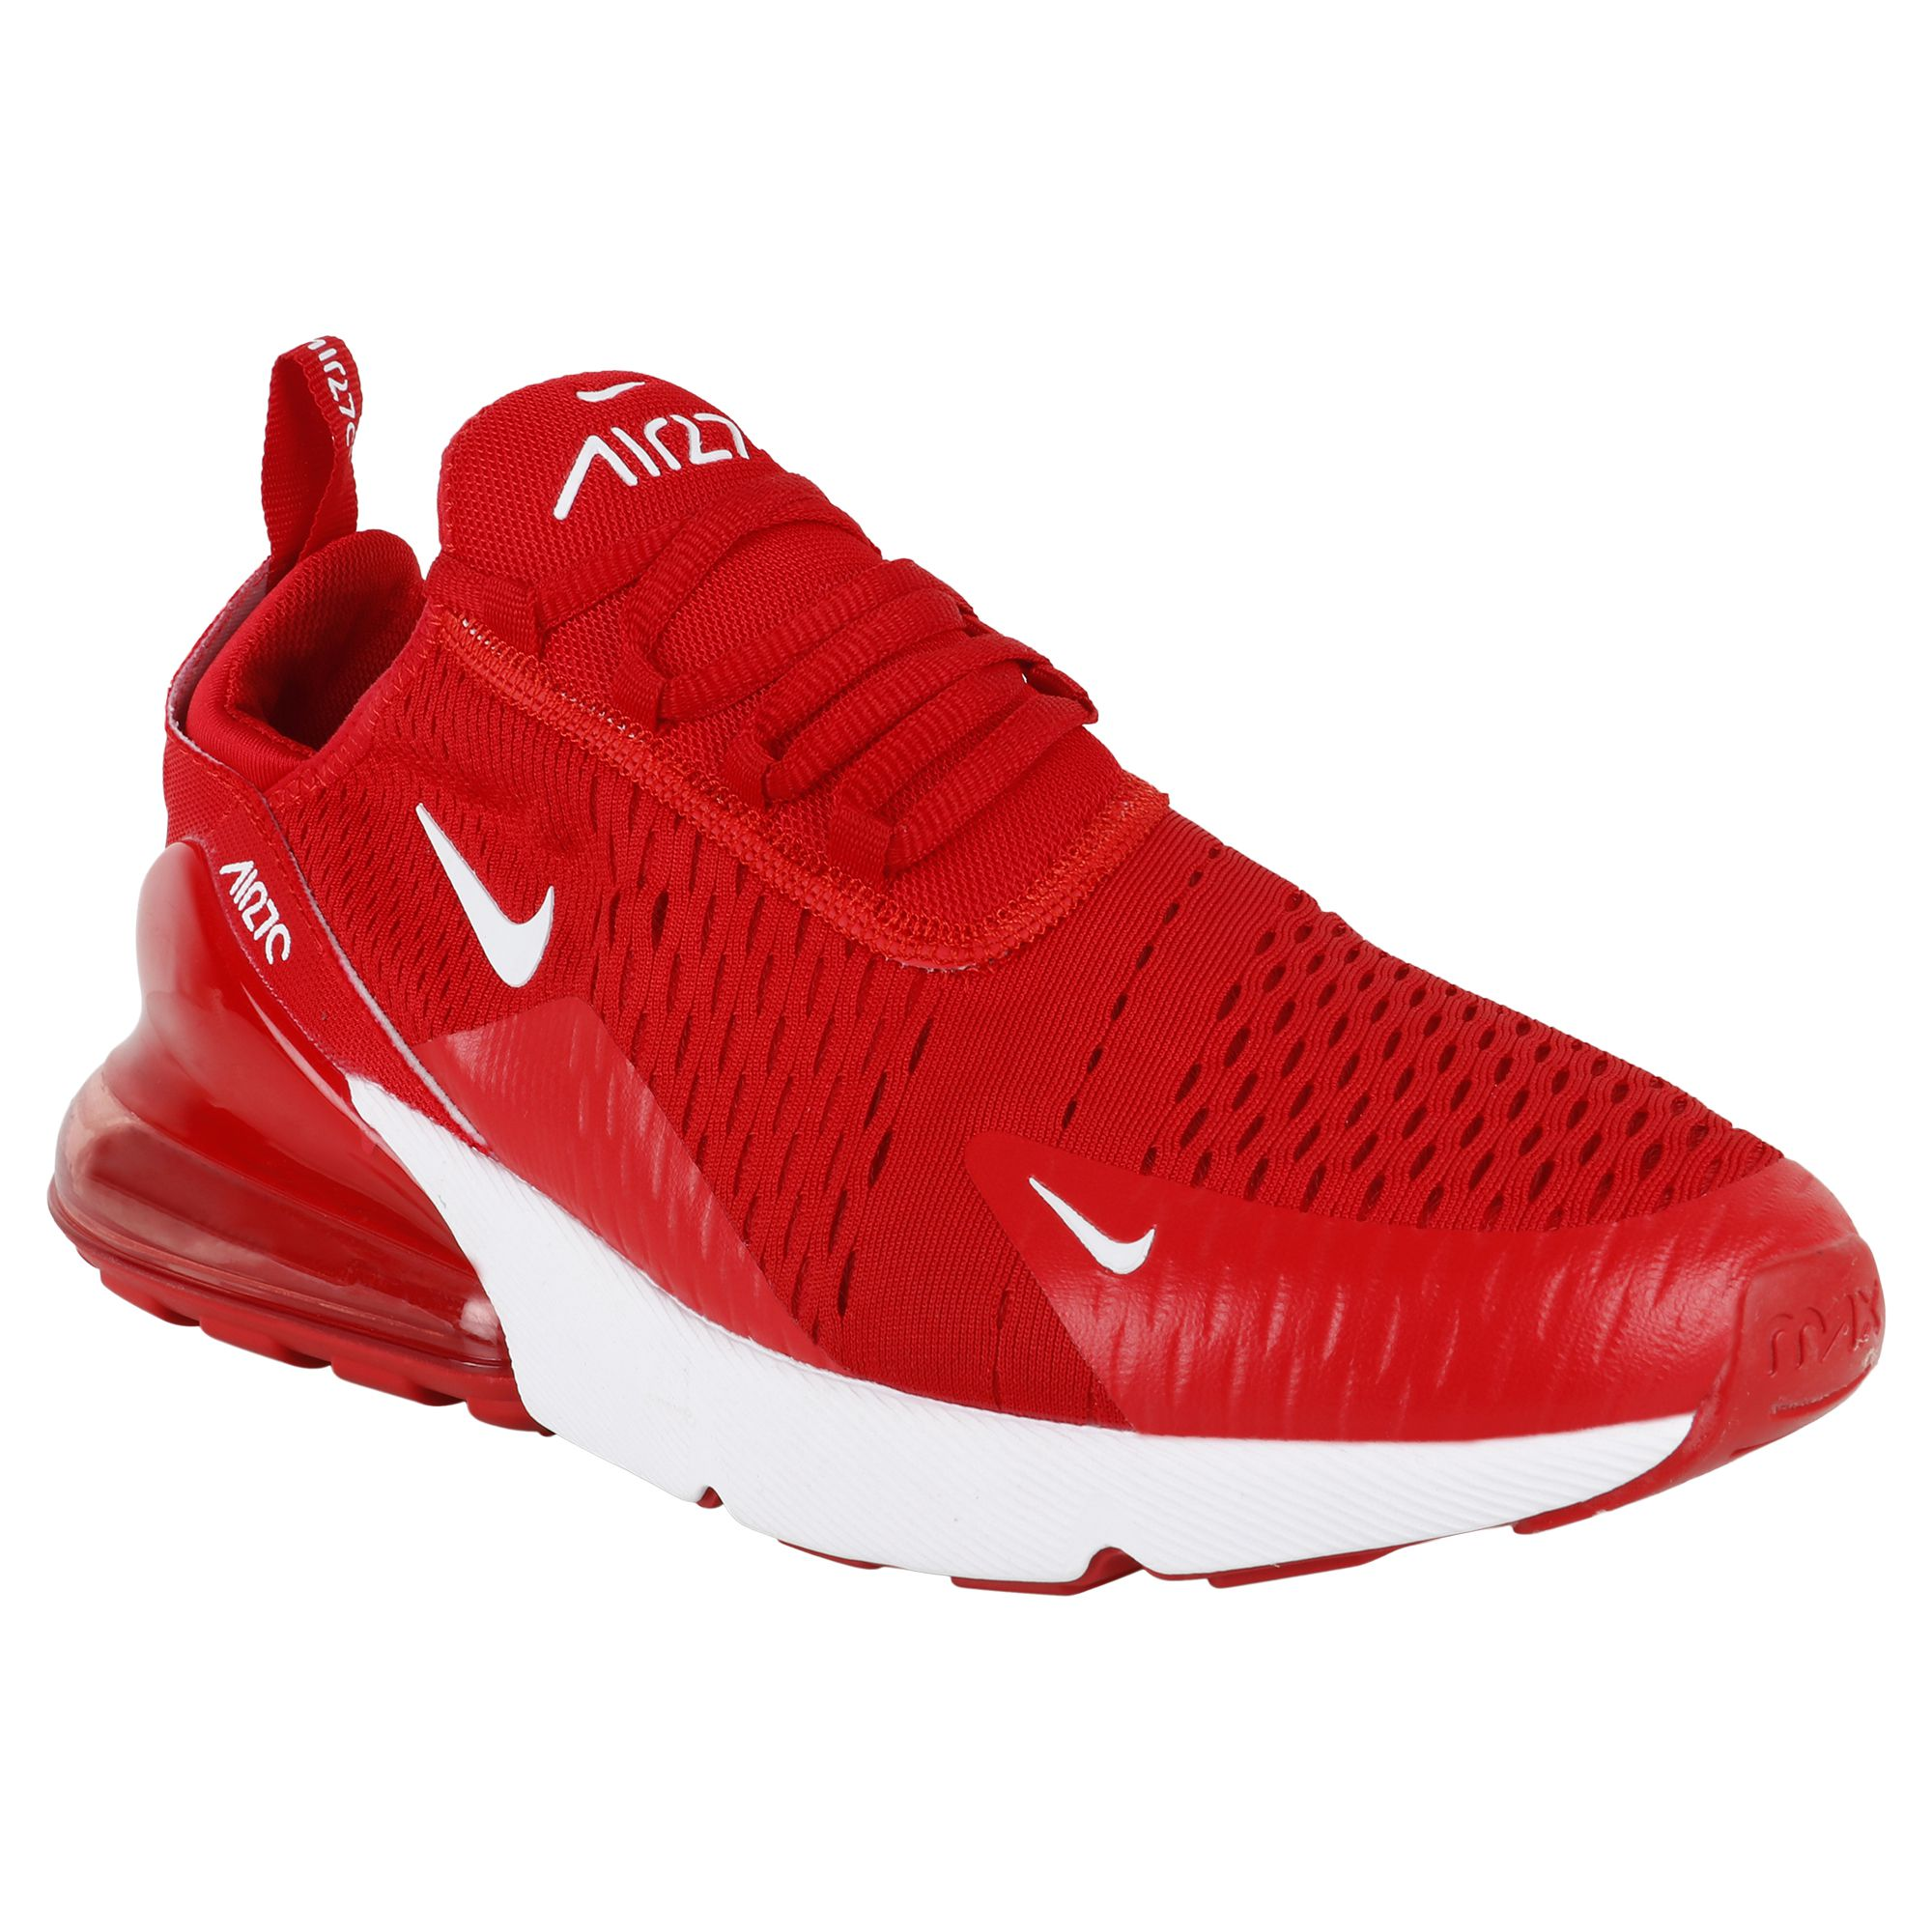 Nike Air Max 270 Red Running Shoes - Buy Nike Air Max 270 Red Running Shoes  Online at Best Prices in India on Snapdeal 841b2bcd4